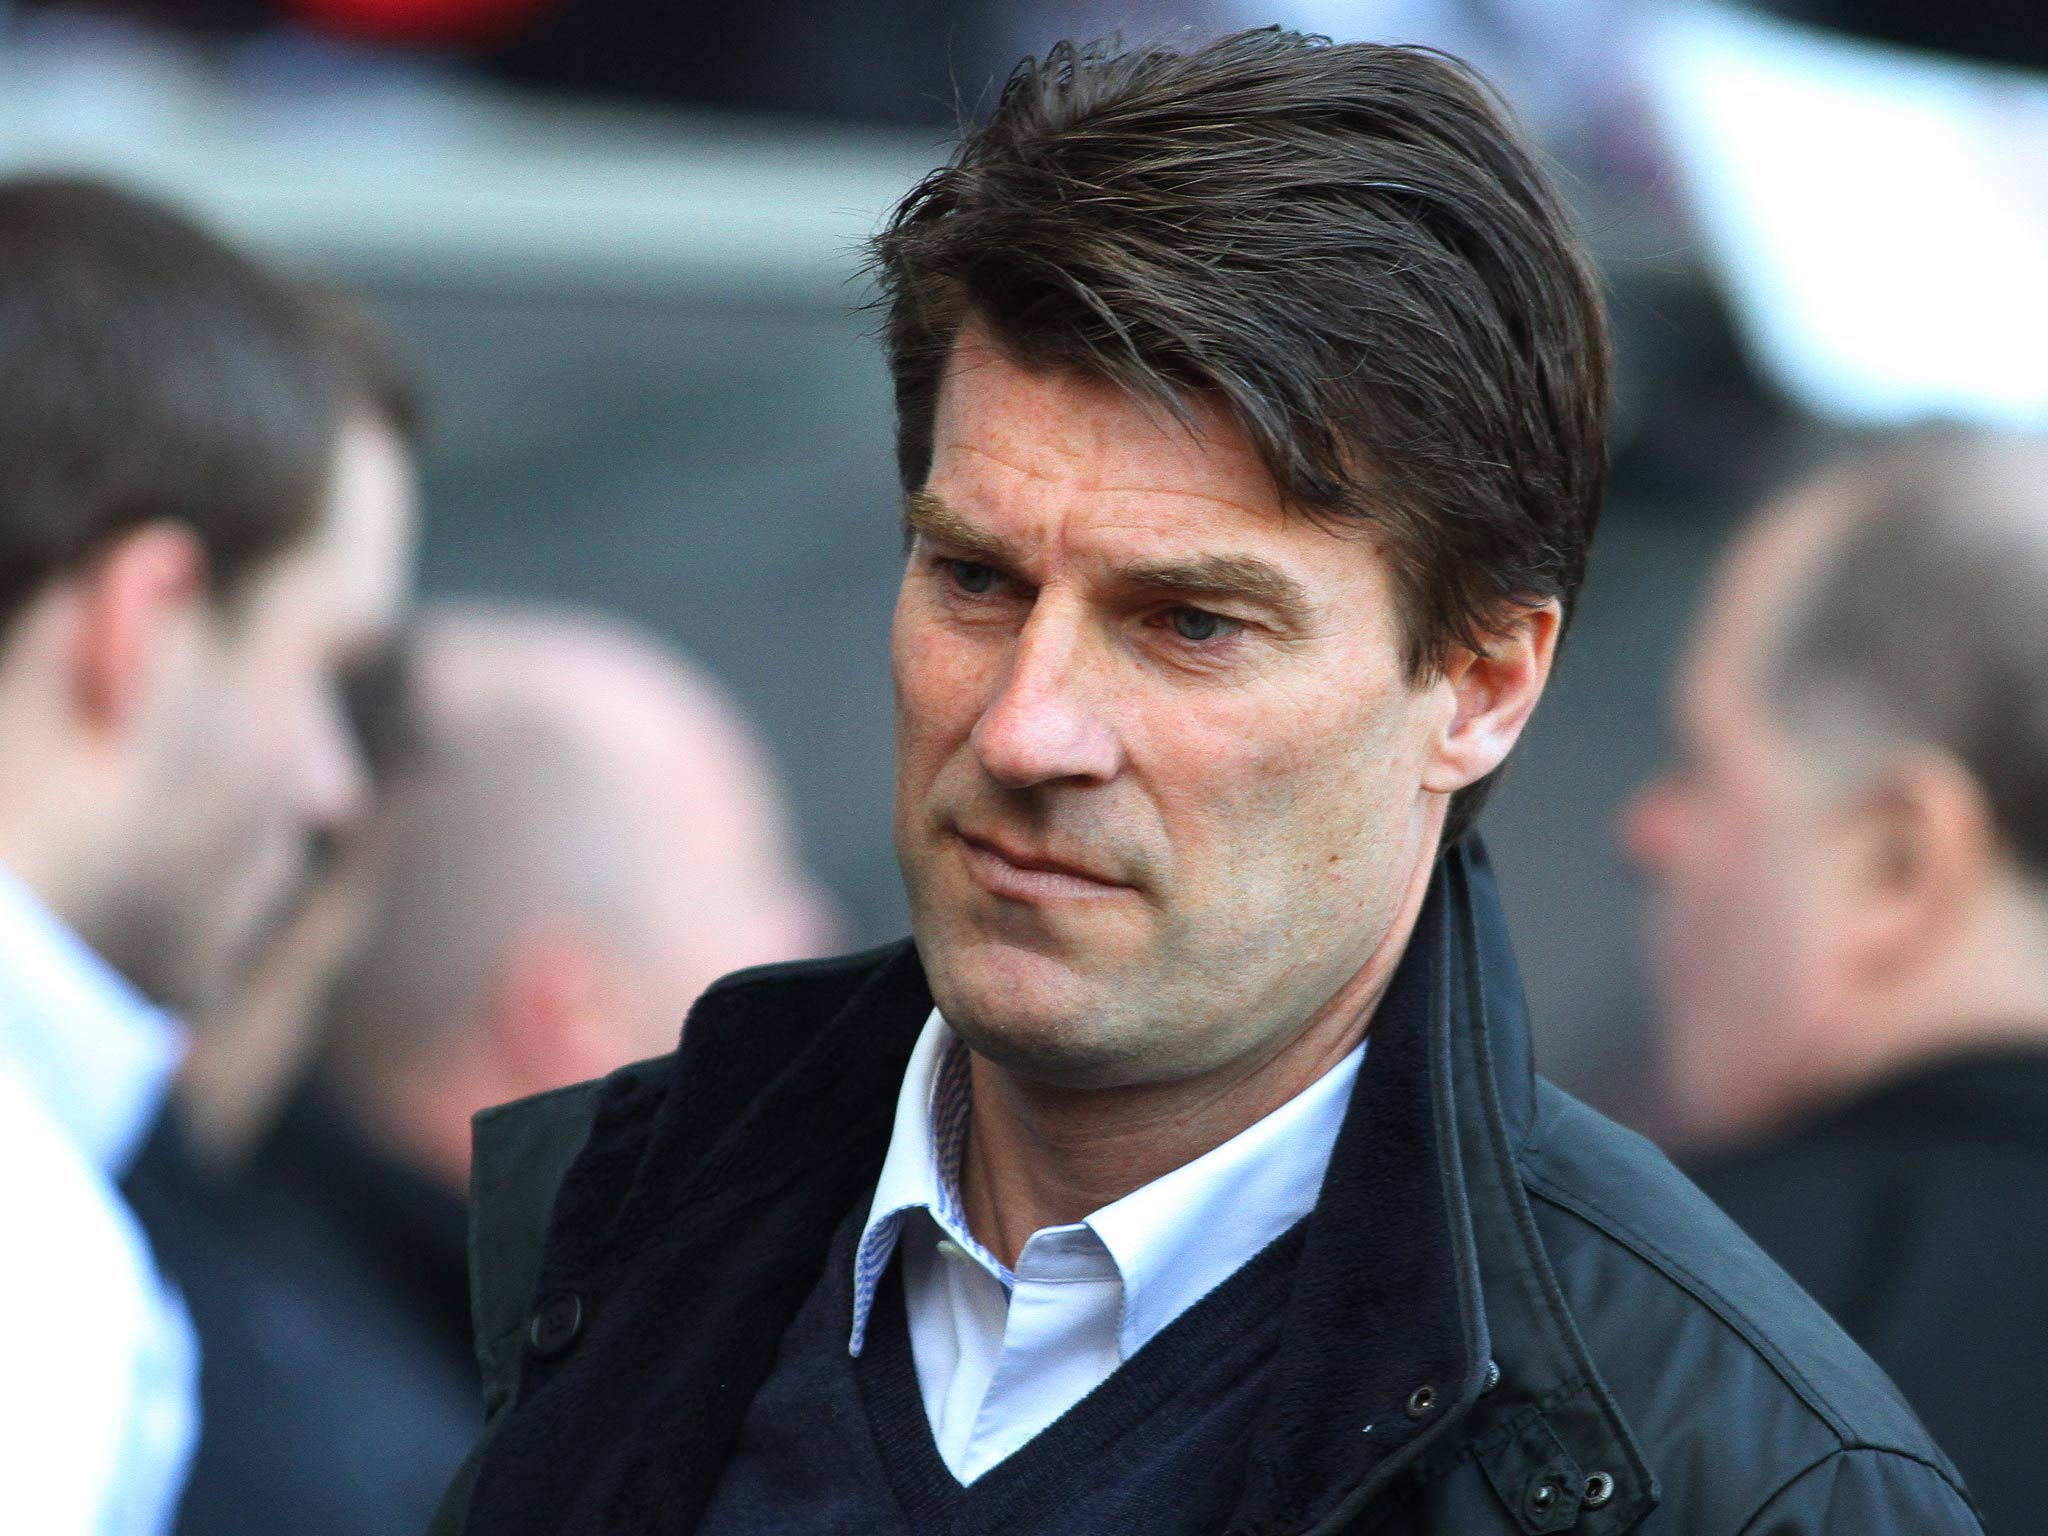 Michael Laudrup future uncertain amid disagreement over transfer